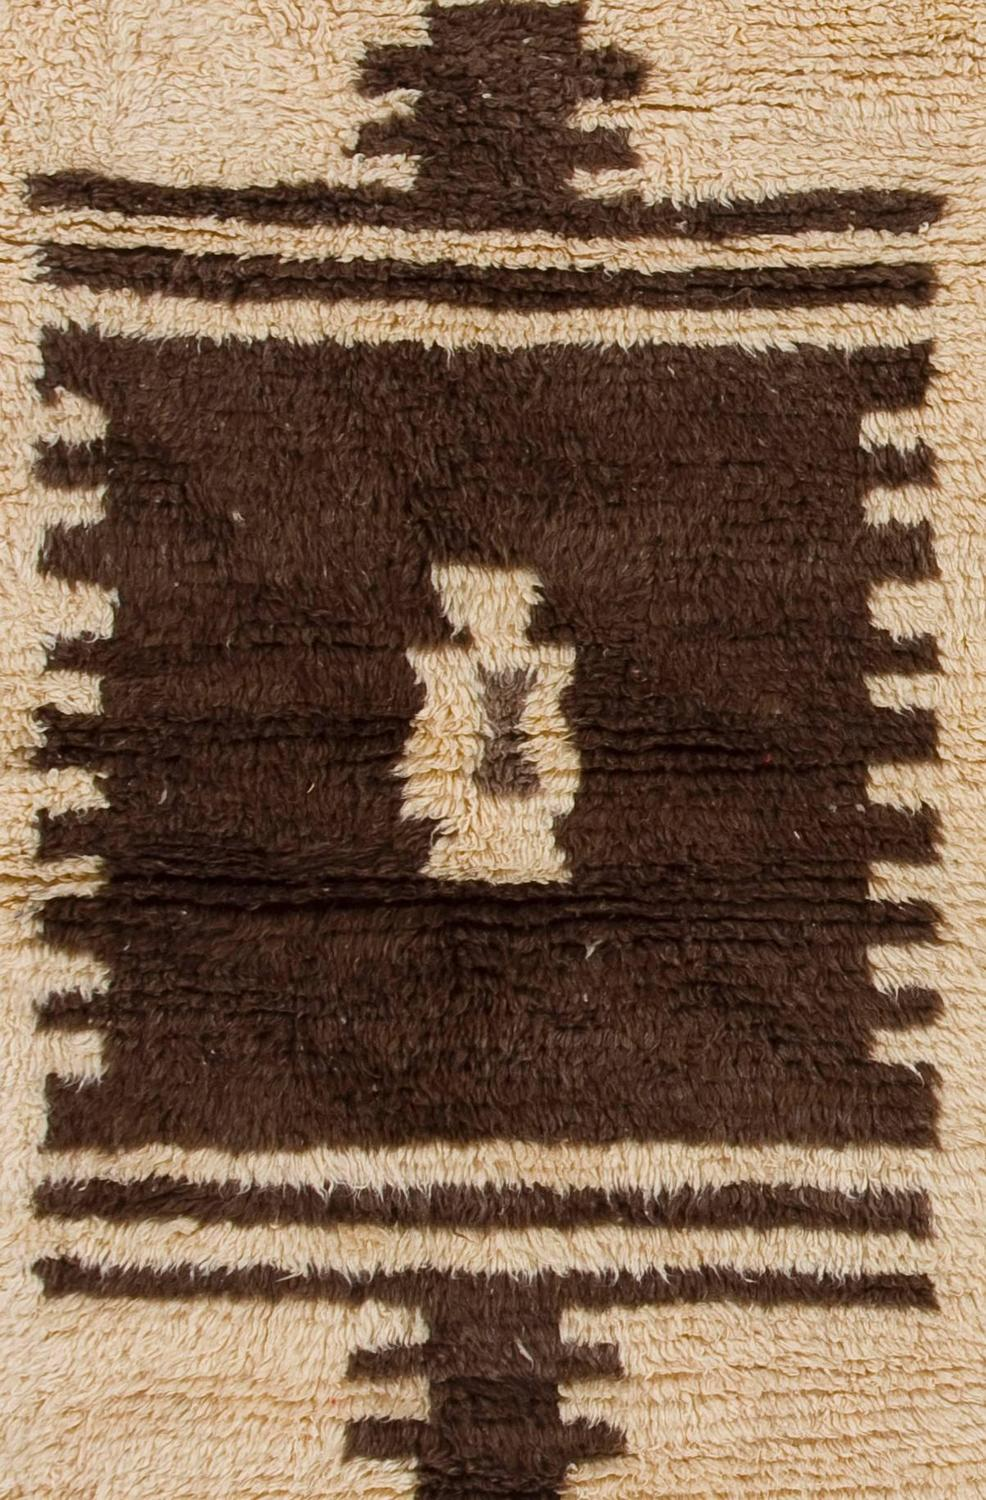 Vintage Quot Tulu Quot Rug In Archaic Design Made Of Natural